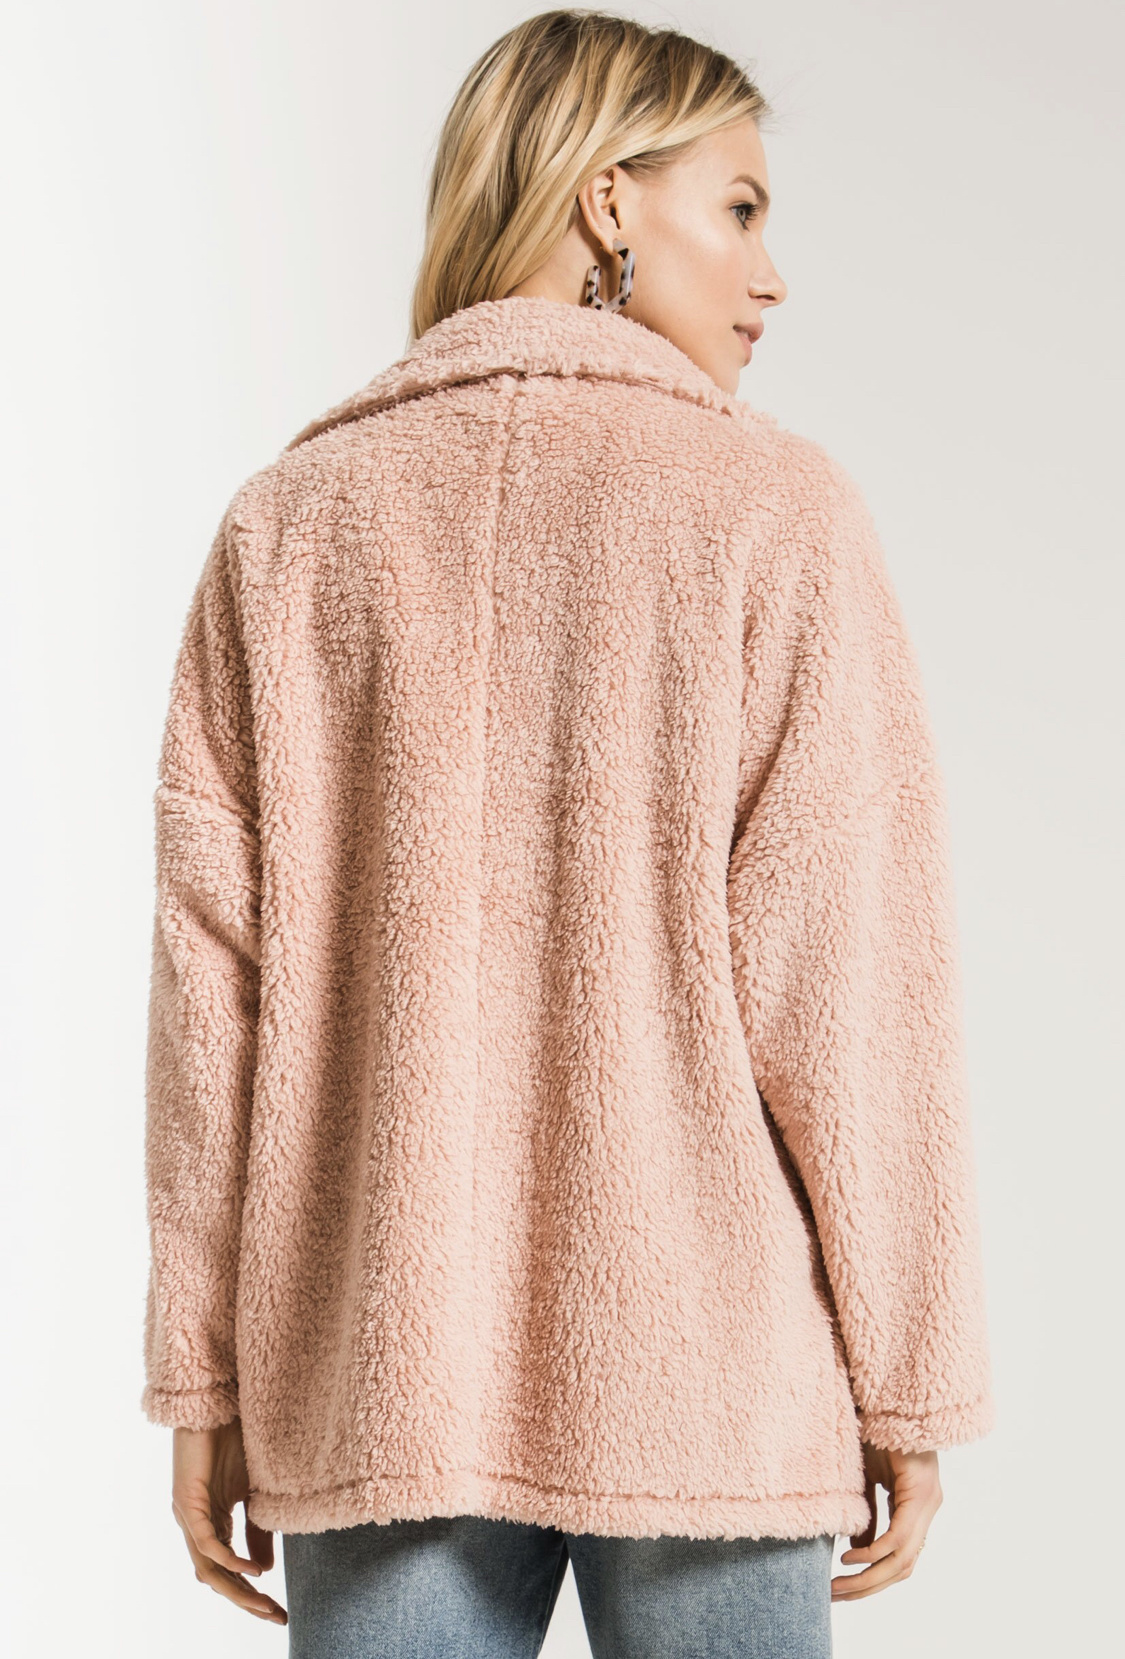 Z Supply Plush Teddy Coat